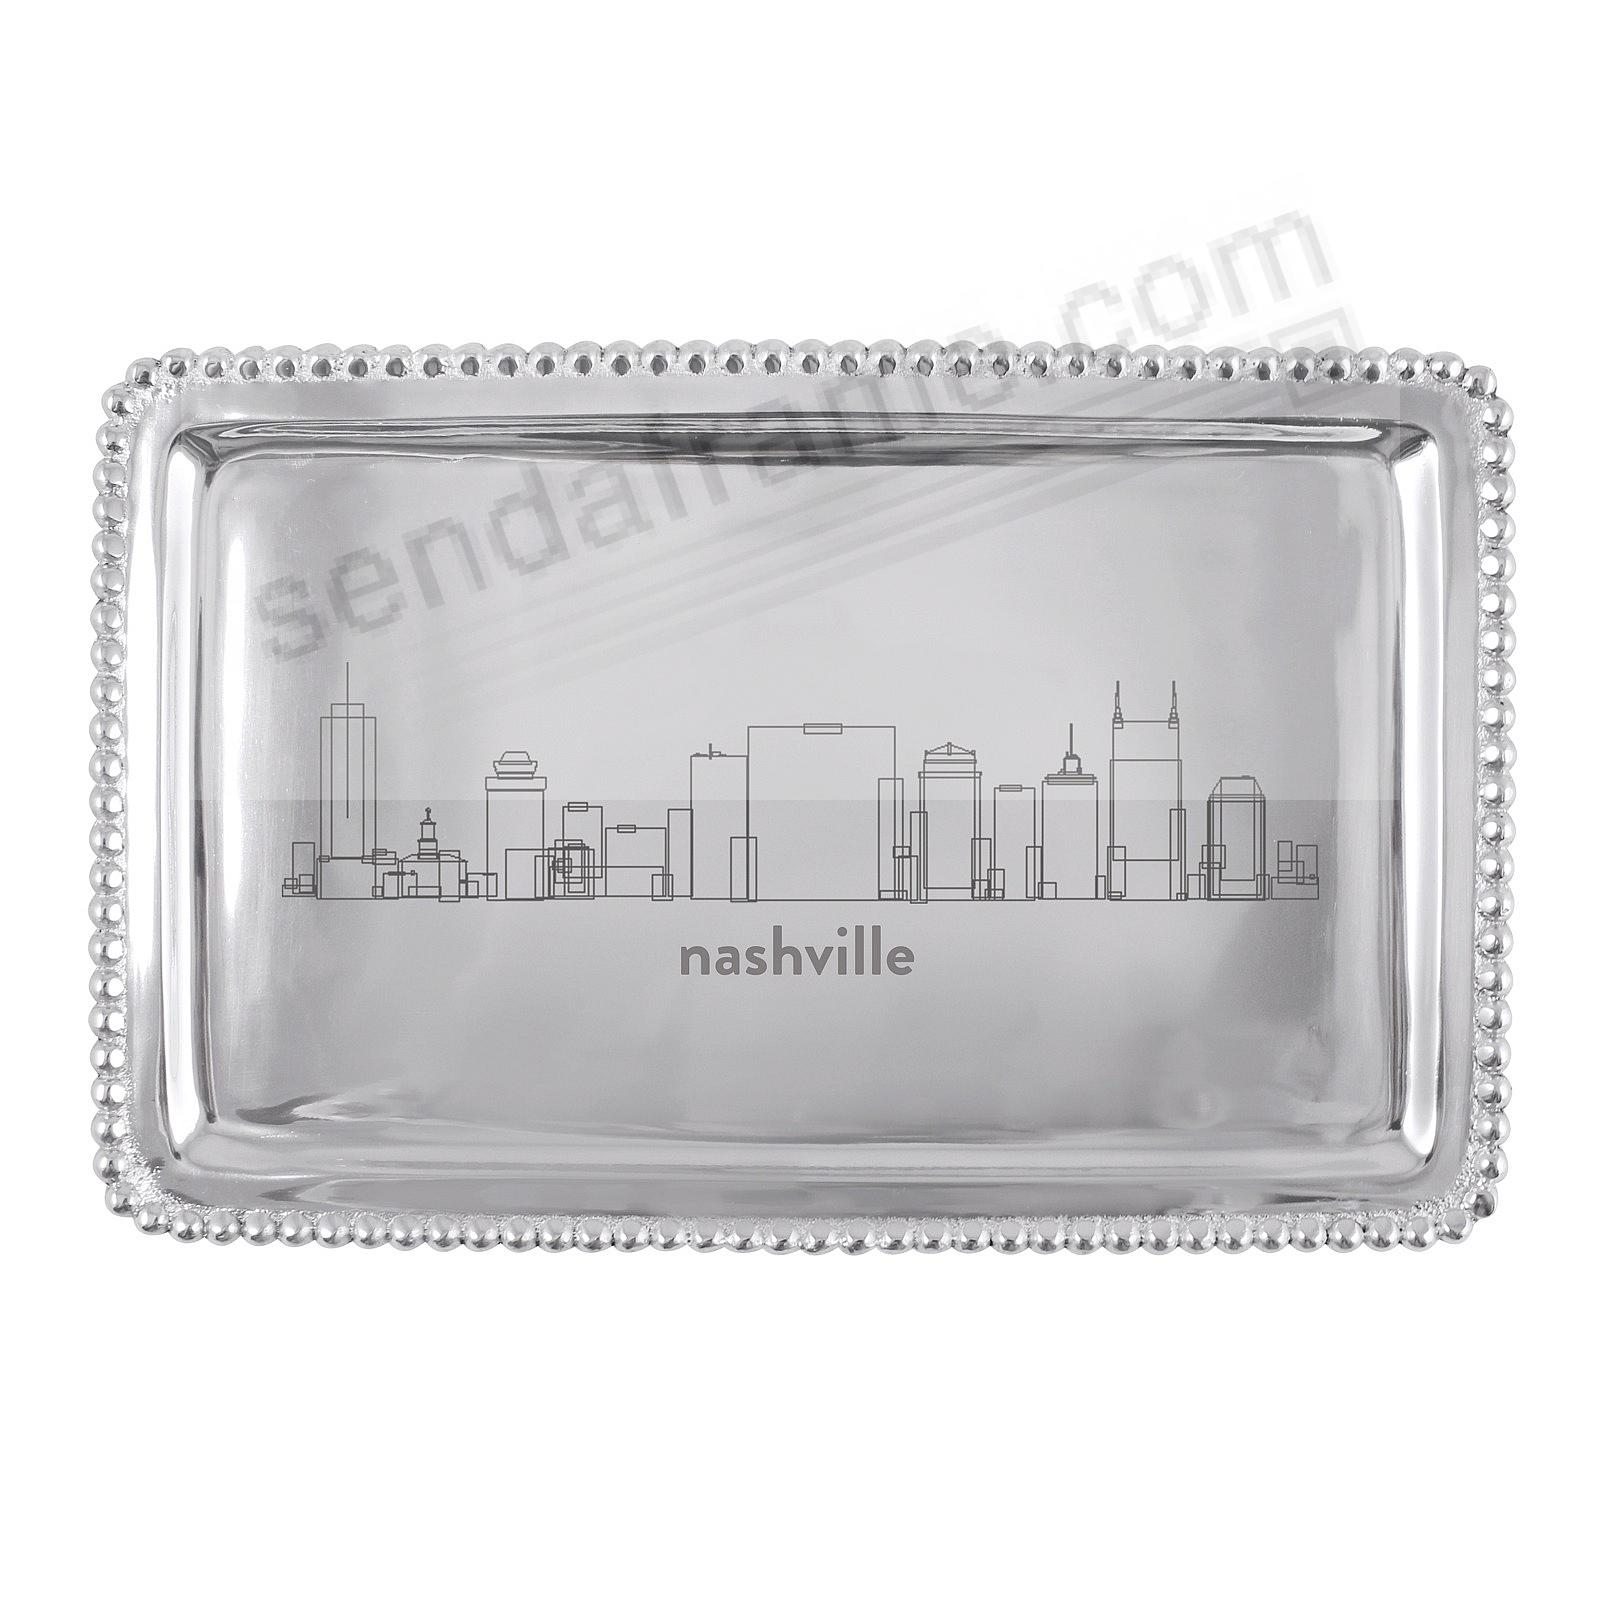 The NASHVILLE-TN CITYSCAPE BEADED BUFFET TRAY crafted by Mariposa®